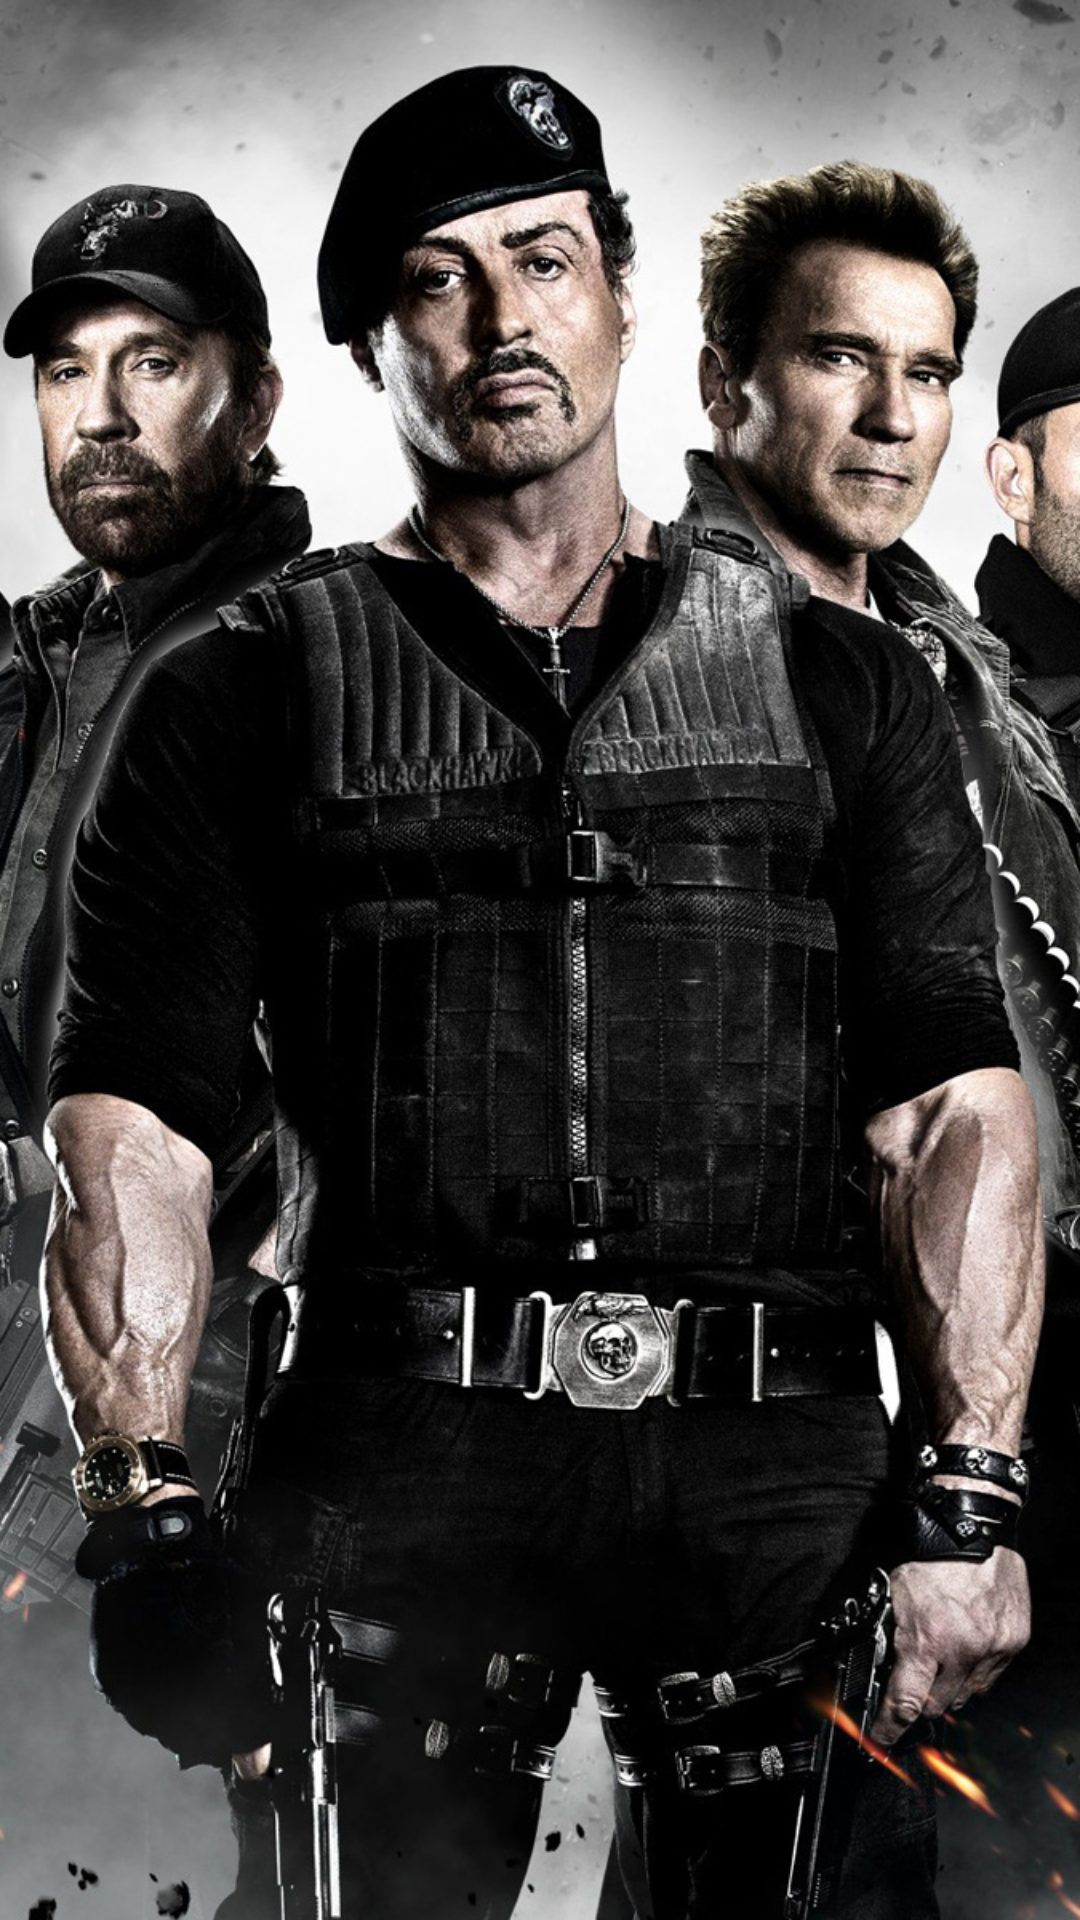 The Expendables Hd Wallpaper